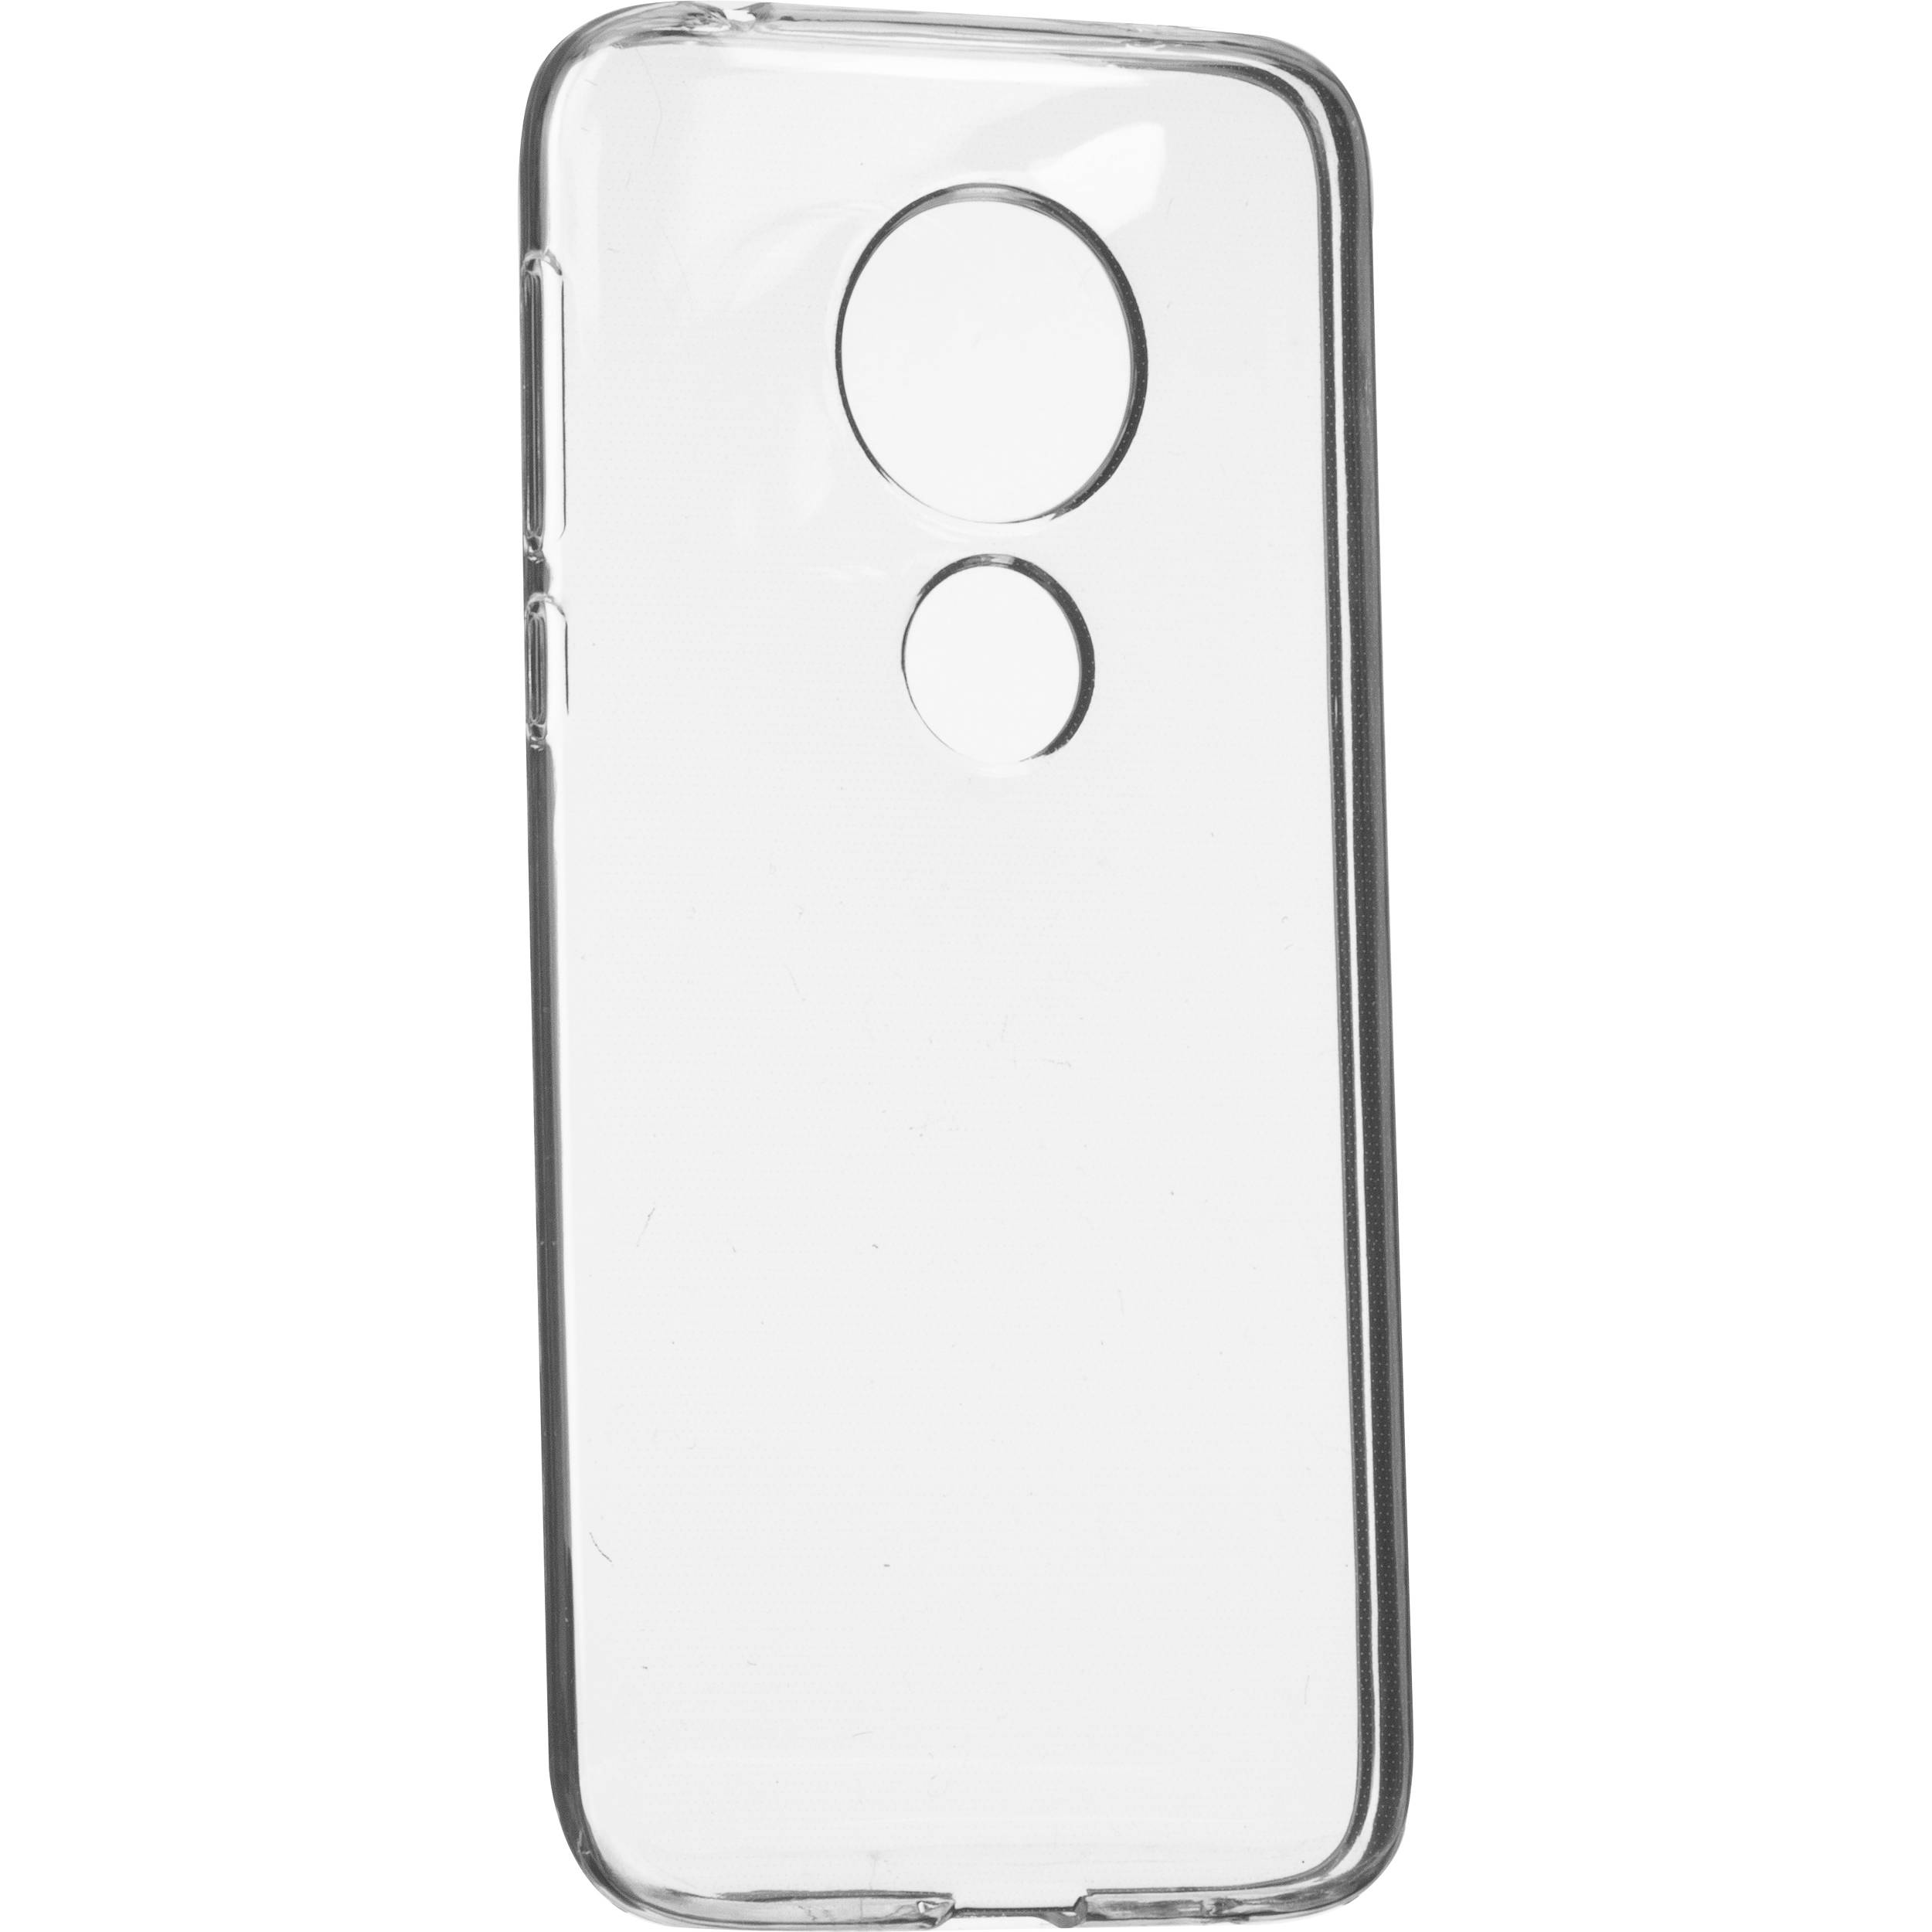 promo code 25779 22185 AVODA TPU Case for Moto G7 Play (Clear)